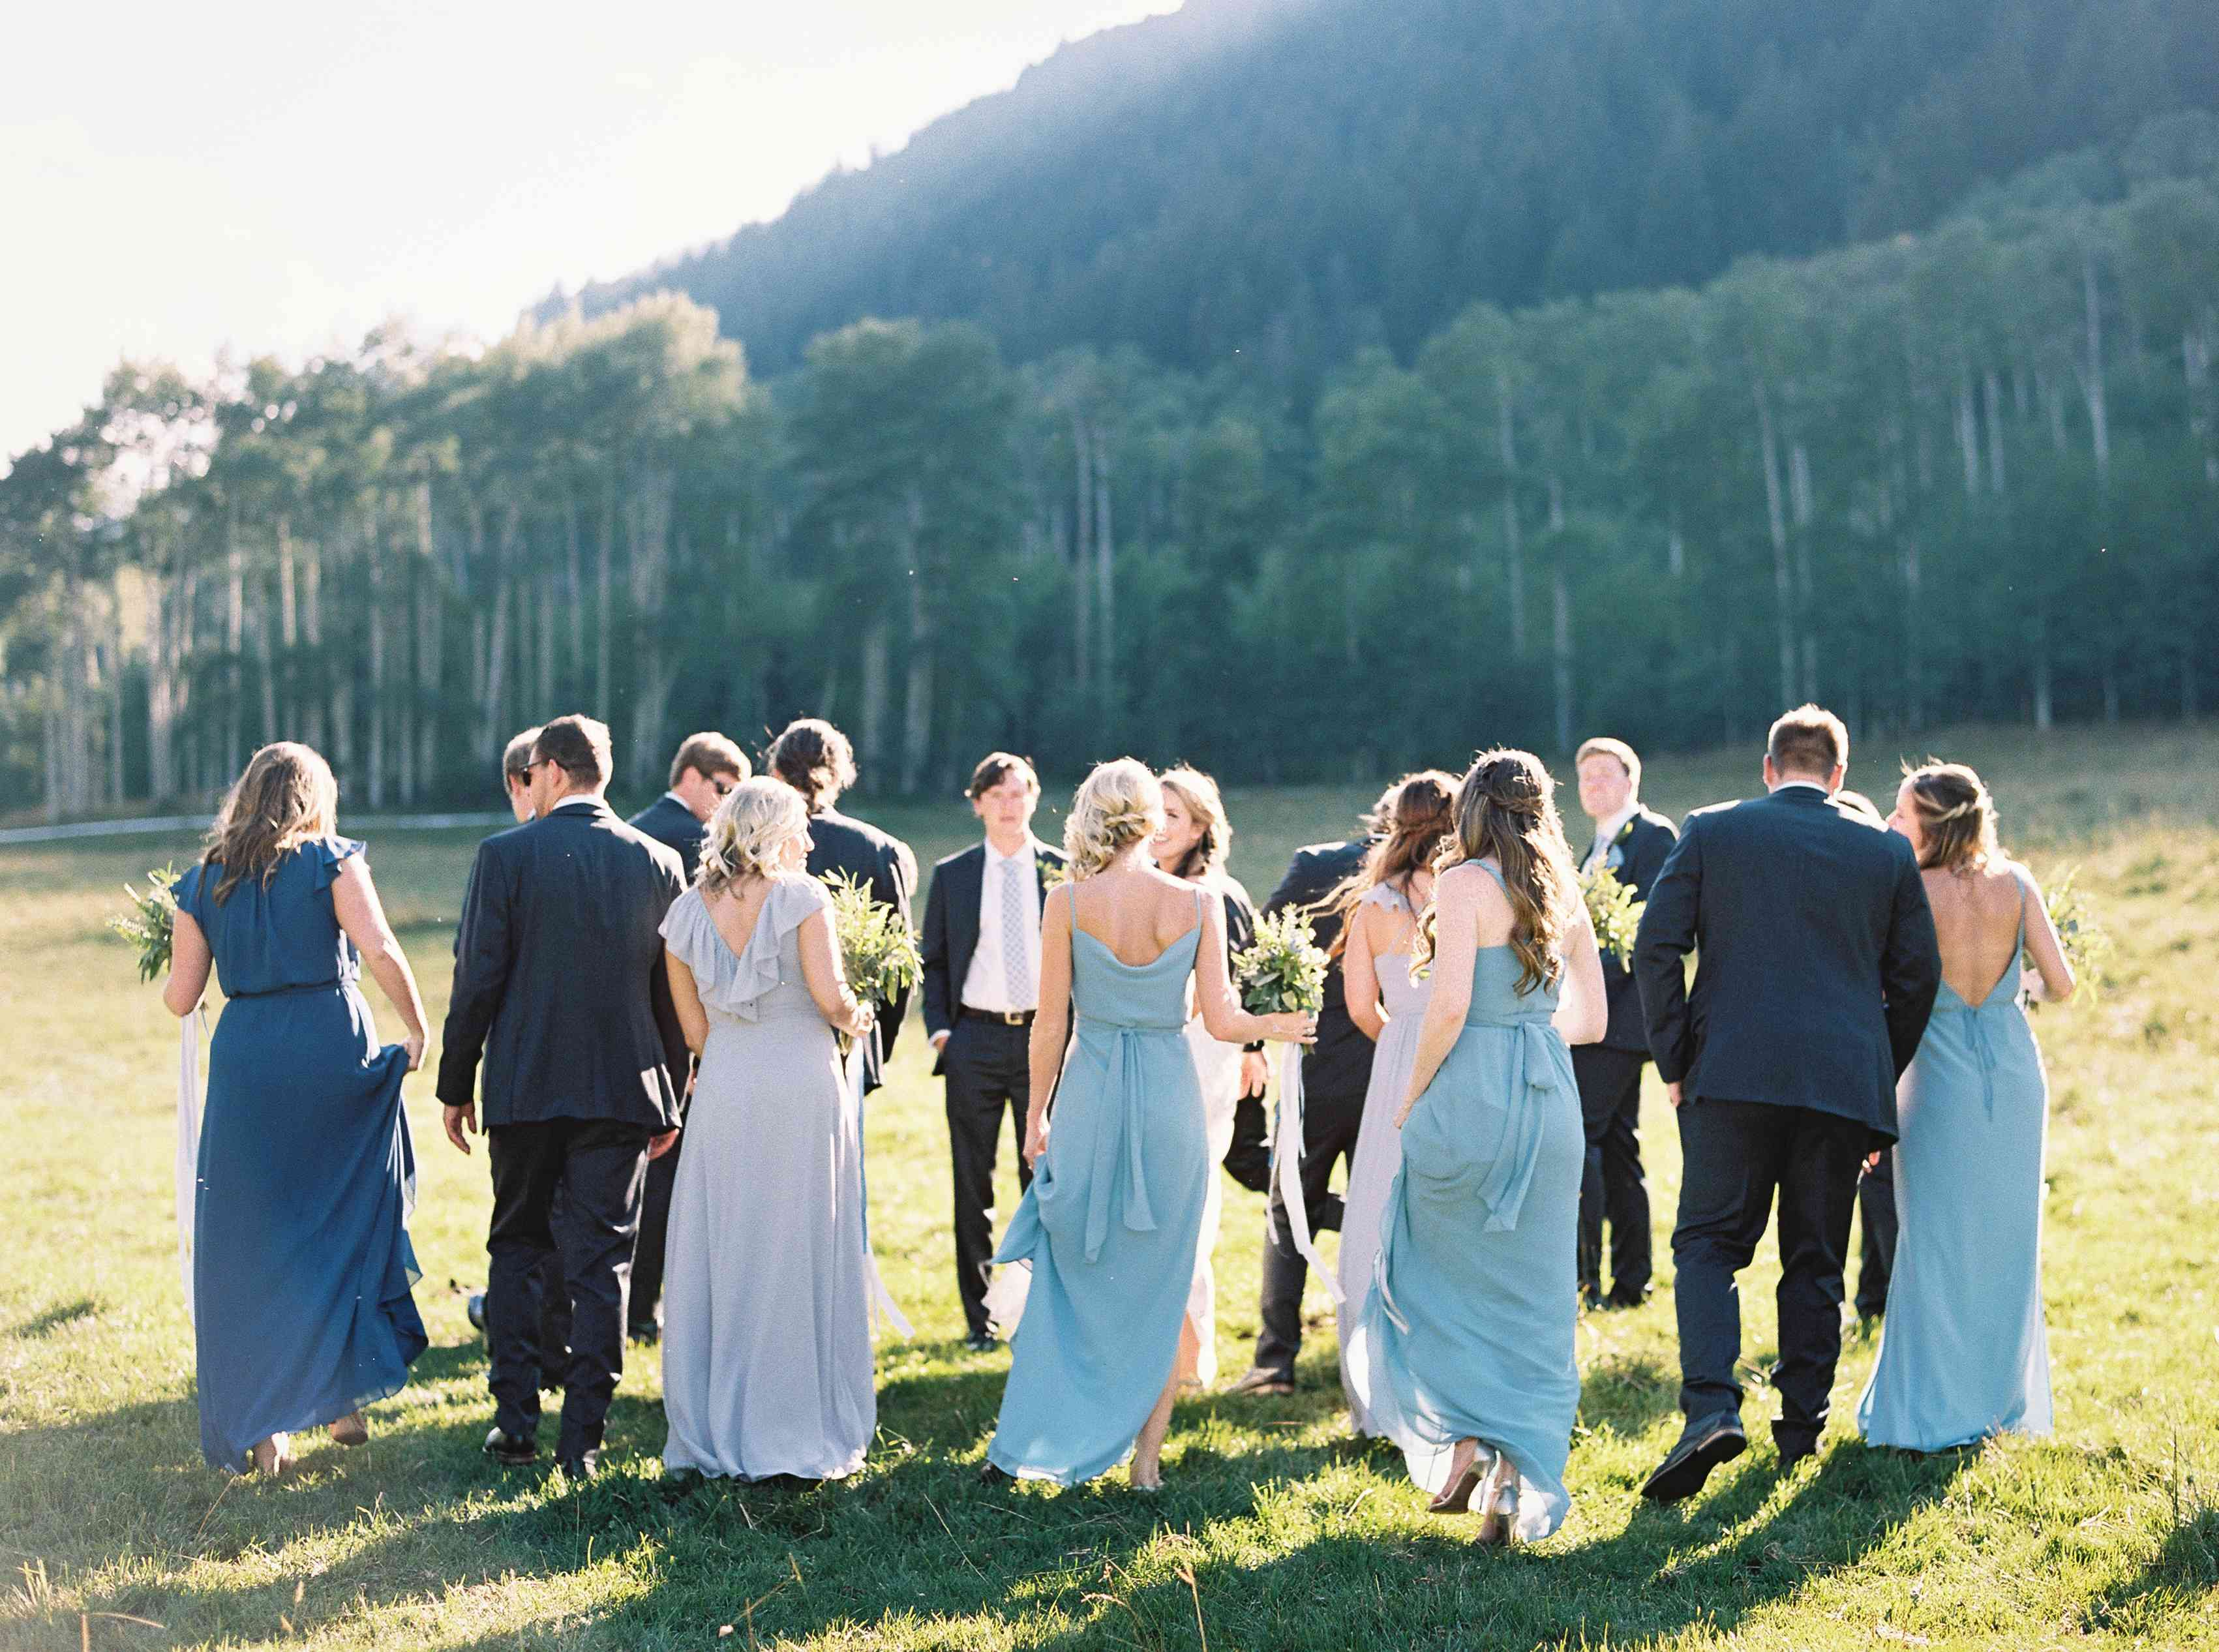 Wedding Party in Blue Dresses